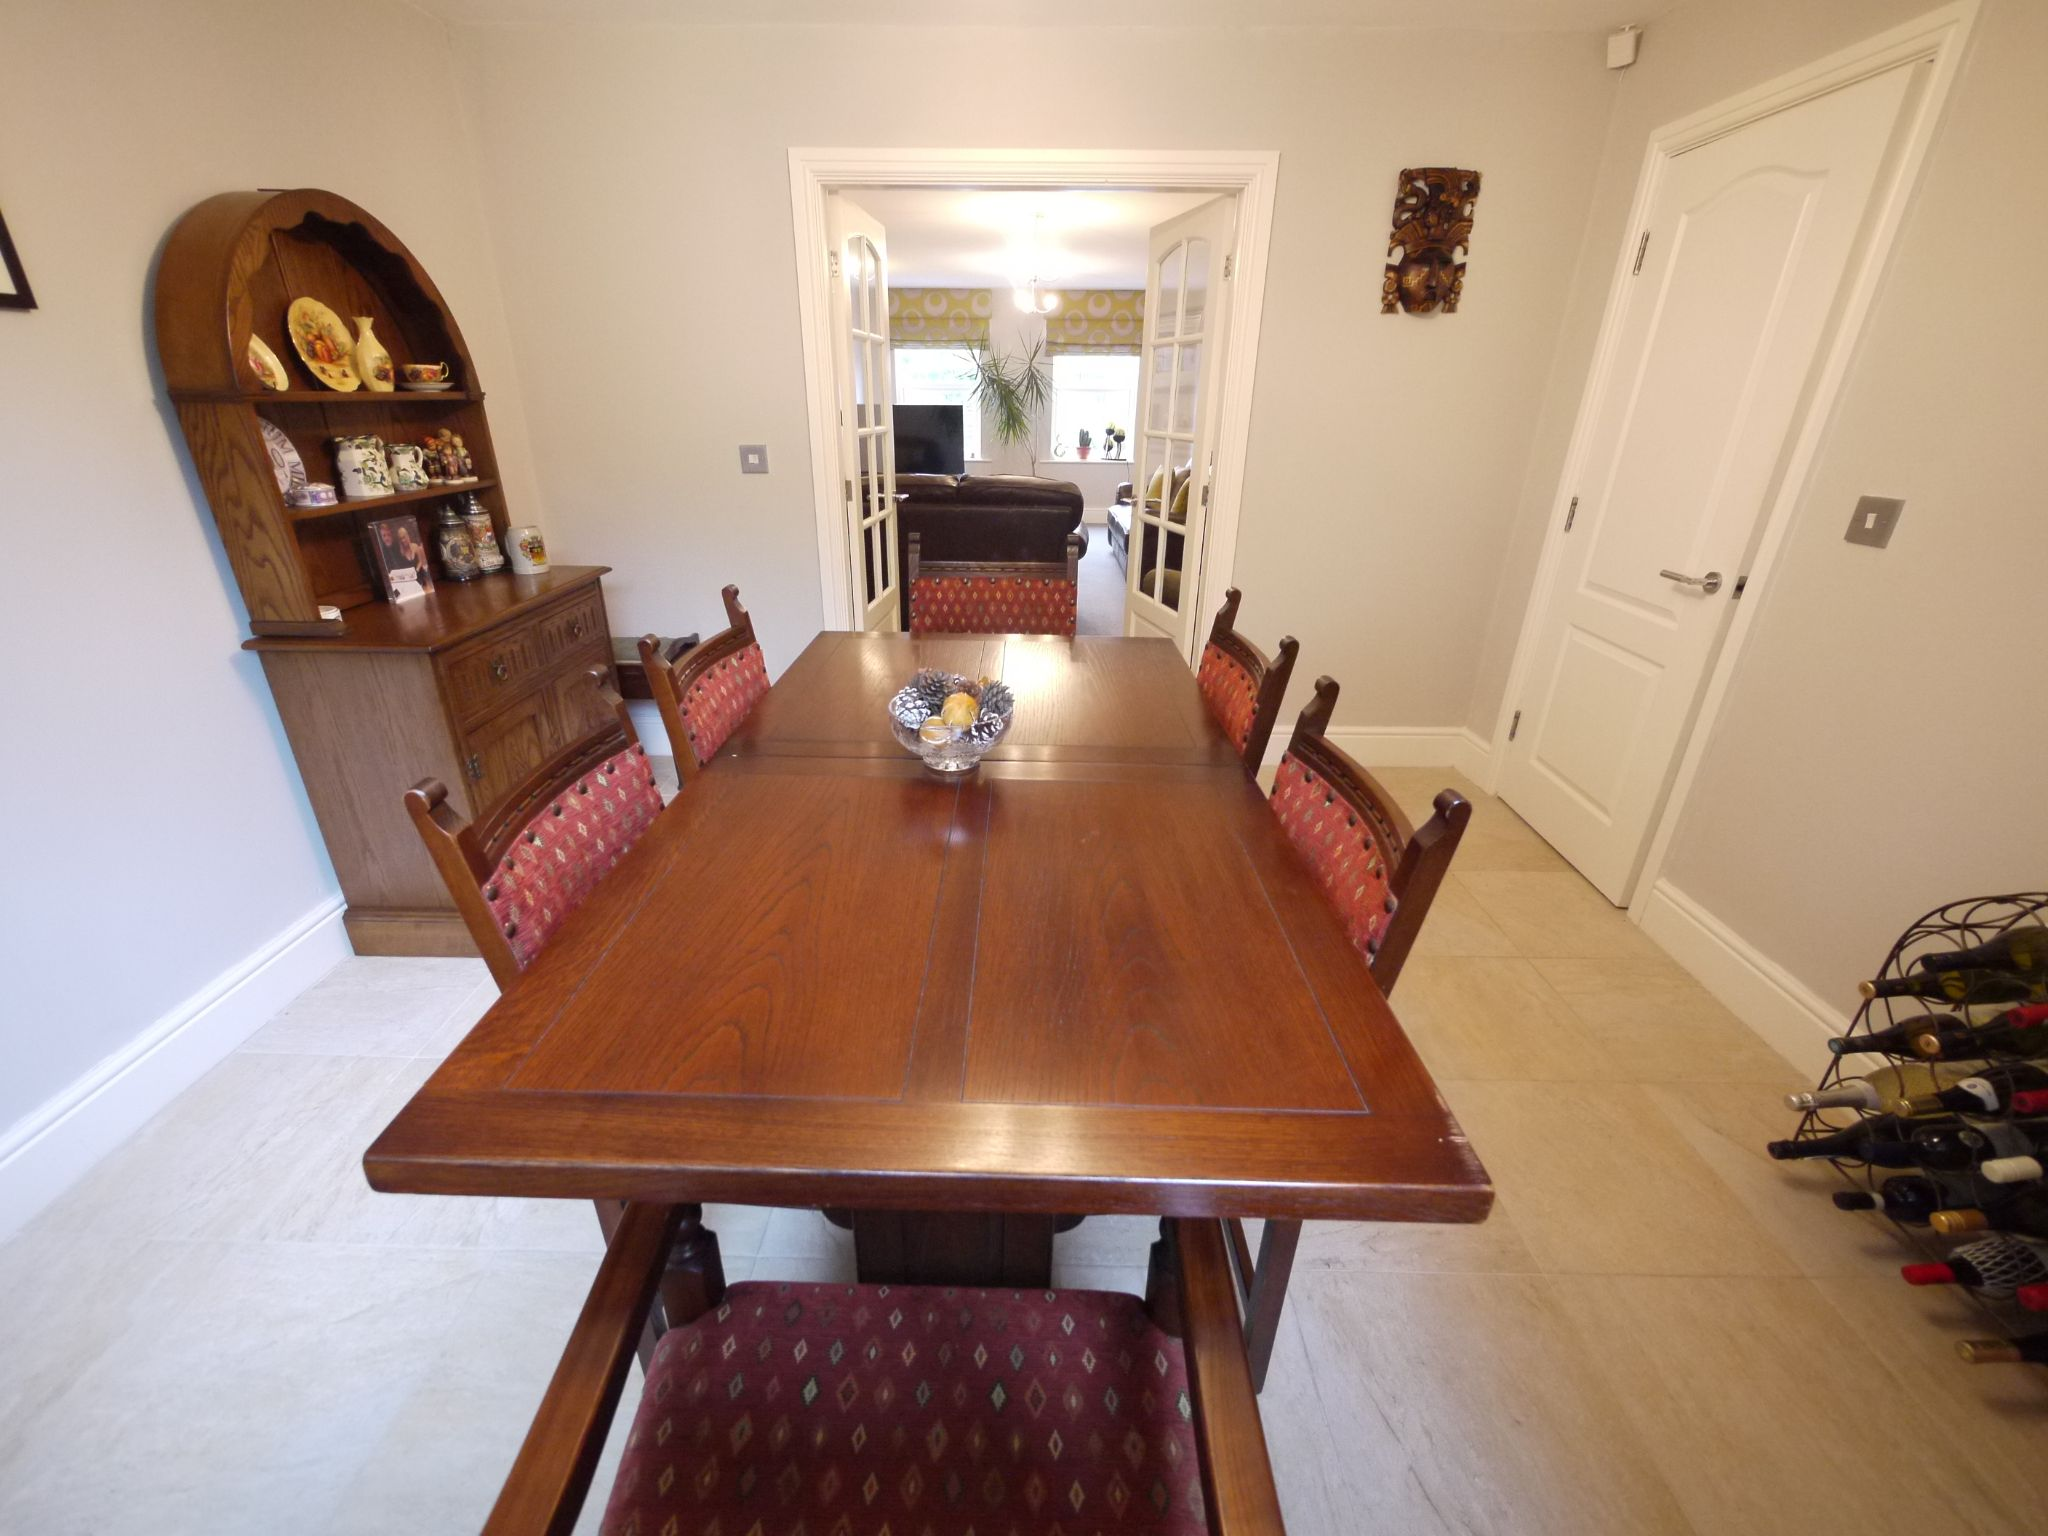 6 bedroom detached house SSTC in Halifax - Dining room 2.